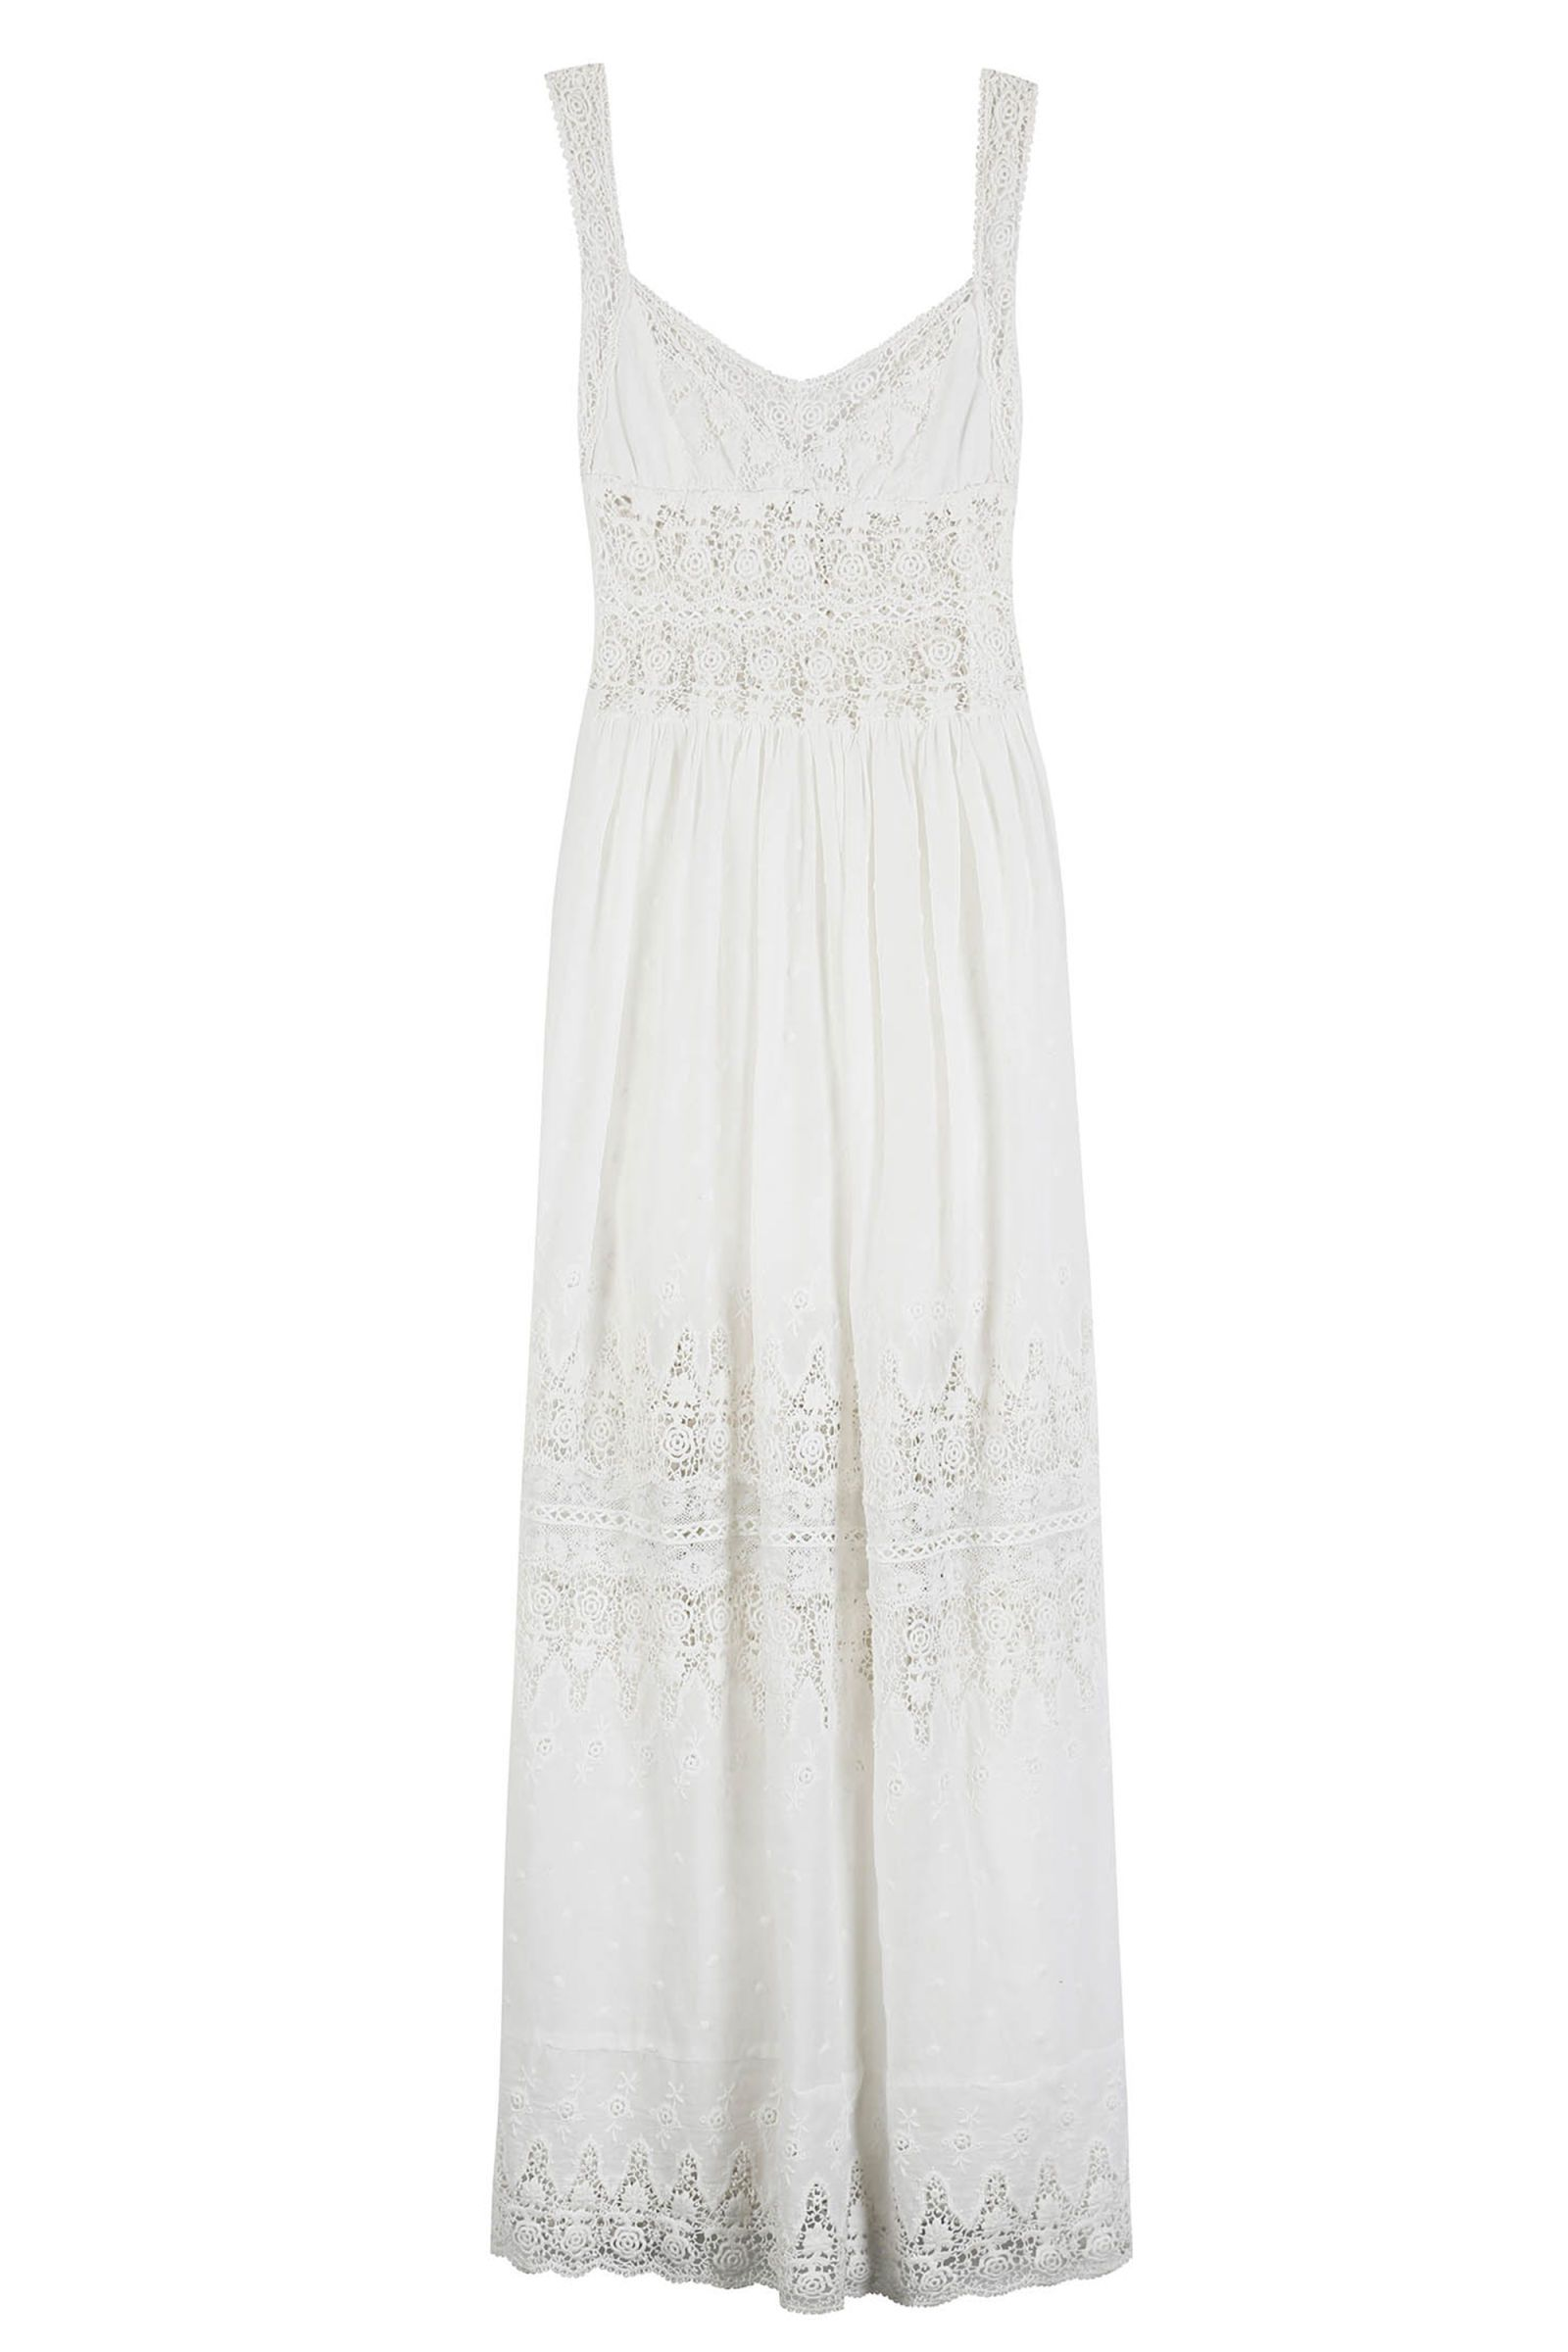 Ivory silk and lace wedding dress   Beach Wedding Dresses You Can Buy Off the Rack  Silk slip Ivory